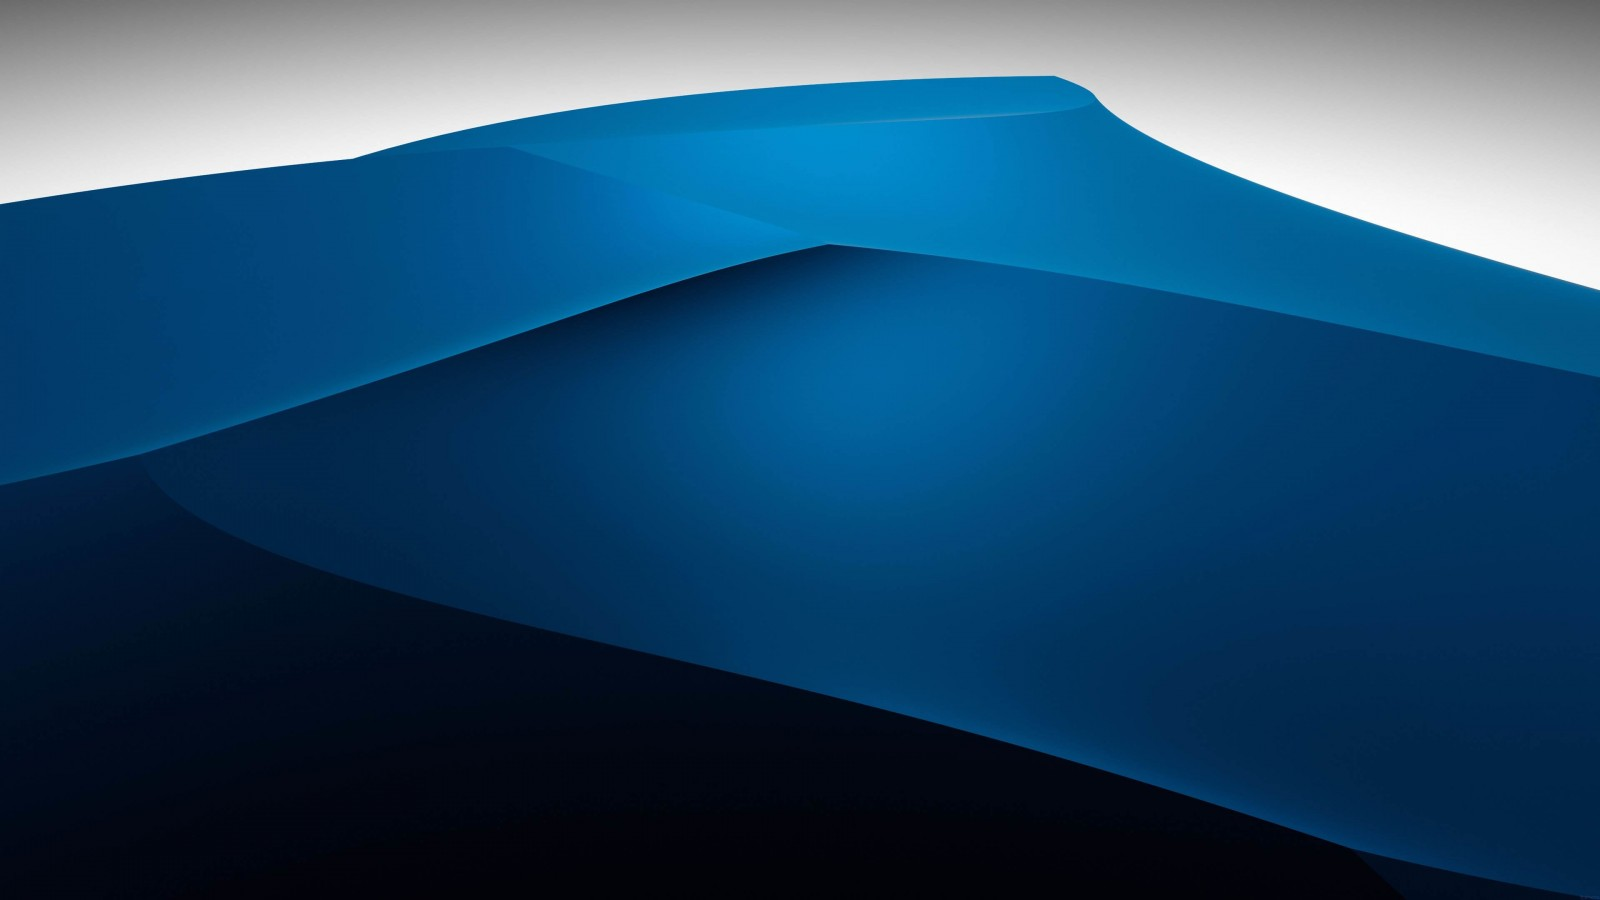 3D Blue Dunes Wallpaper for Desktop 1600 x 900: www.hdwallpapers.net/preview/3d-blue-dunes-wallpaper-for-1600x900...